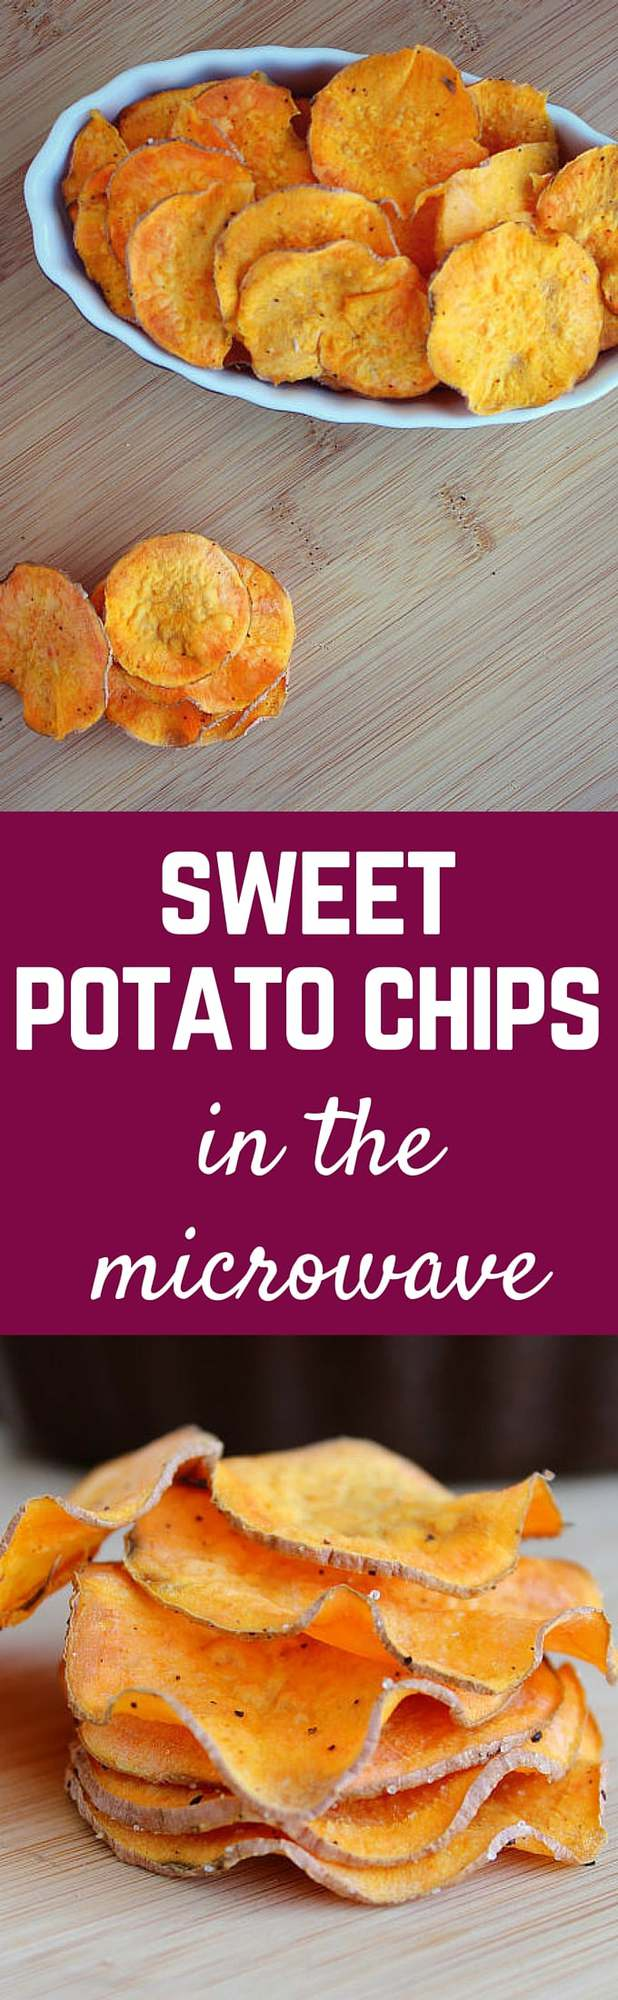 Sweet potatoes can be transformed into crispy and delicious homemade sweet potato chips in a mere 5 minutes in the microwave! Get the easy method and recipe on RachelCooks.com!